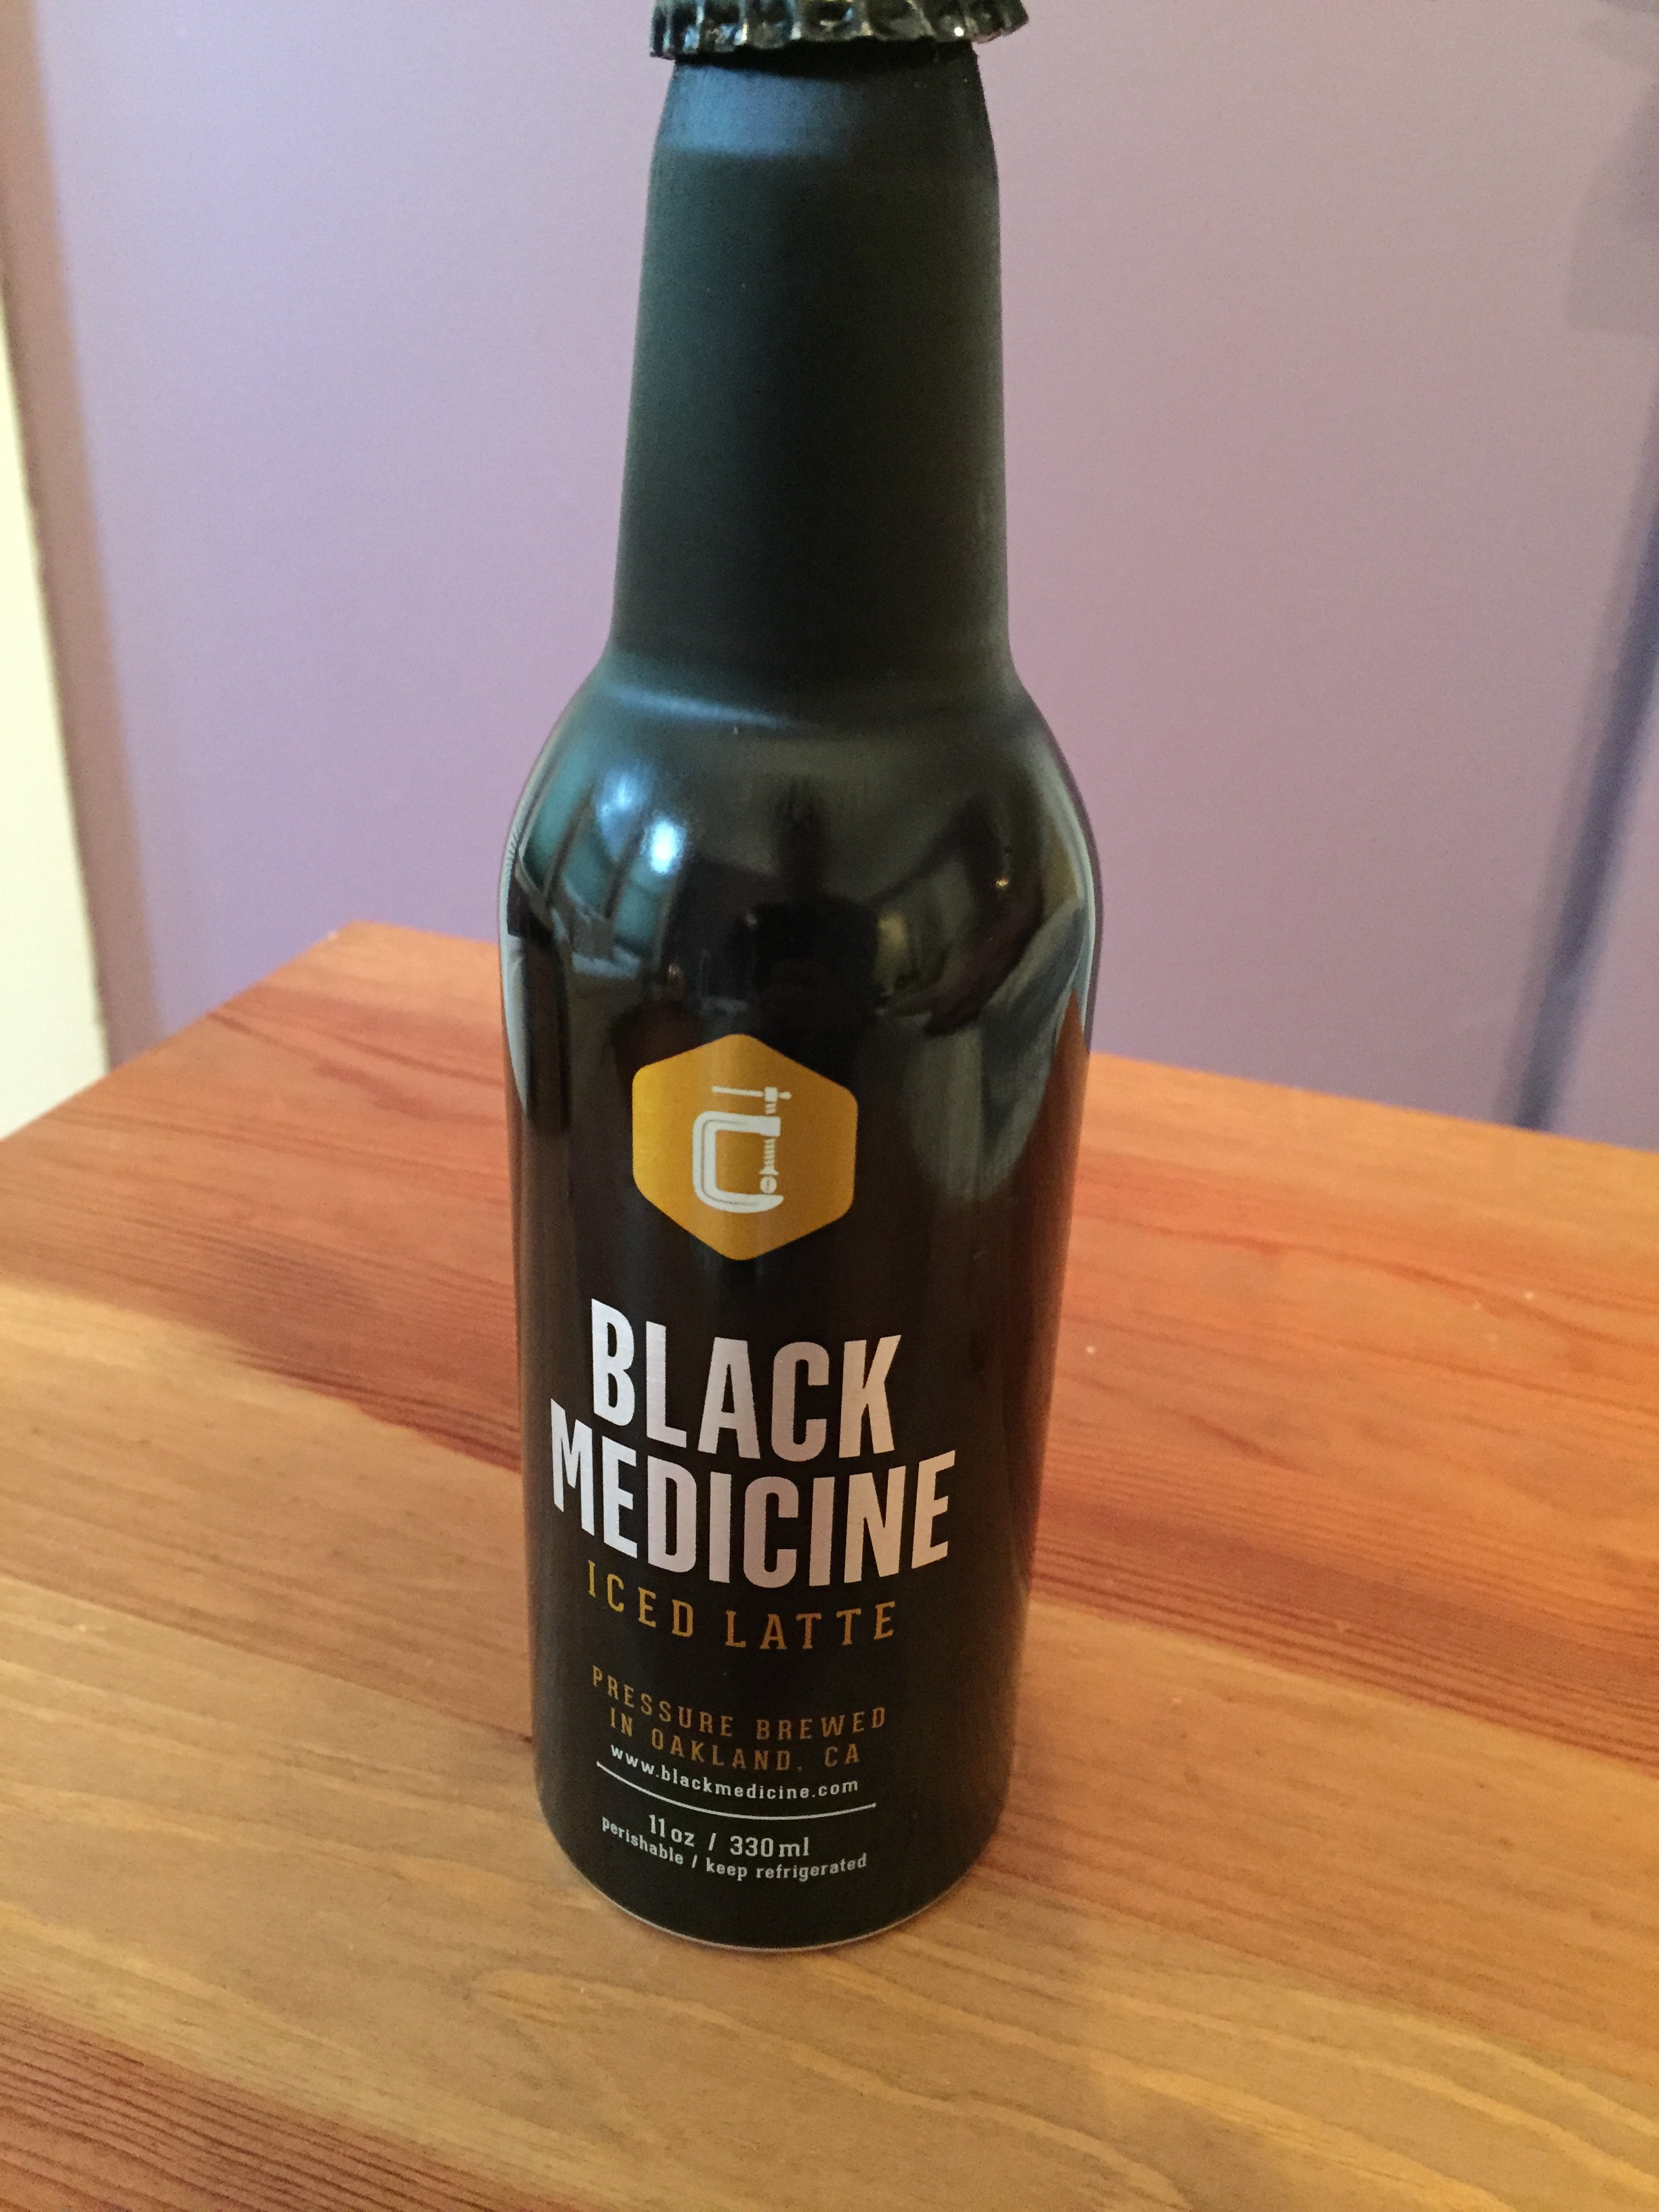 Black Medicine Iced Latte